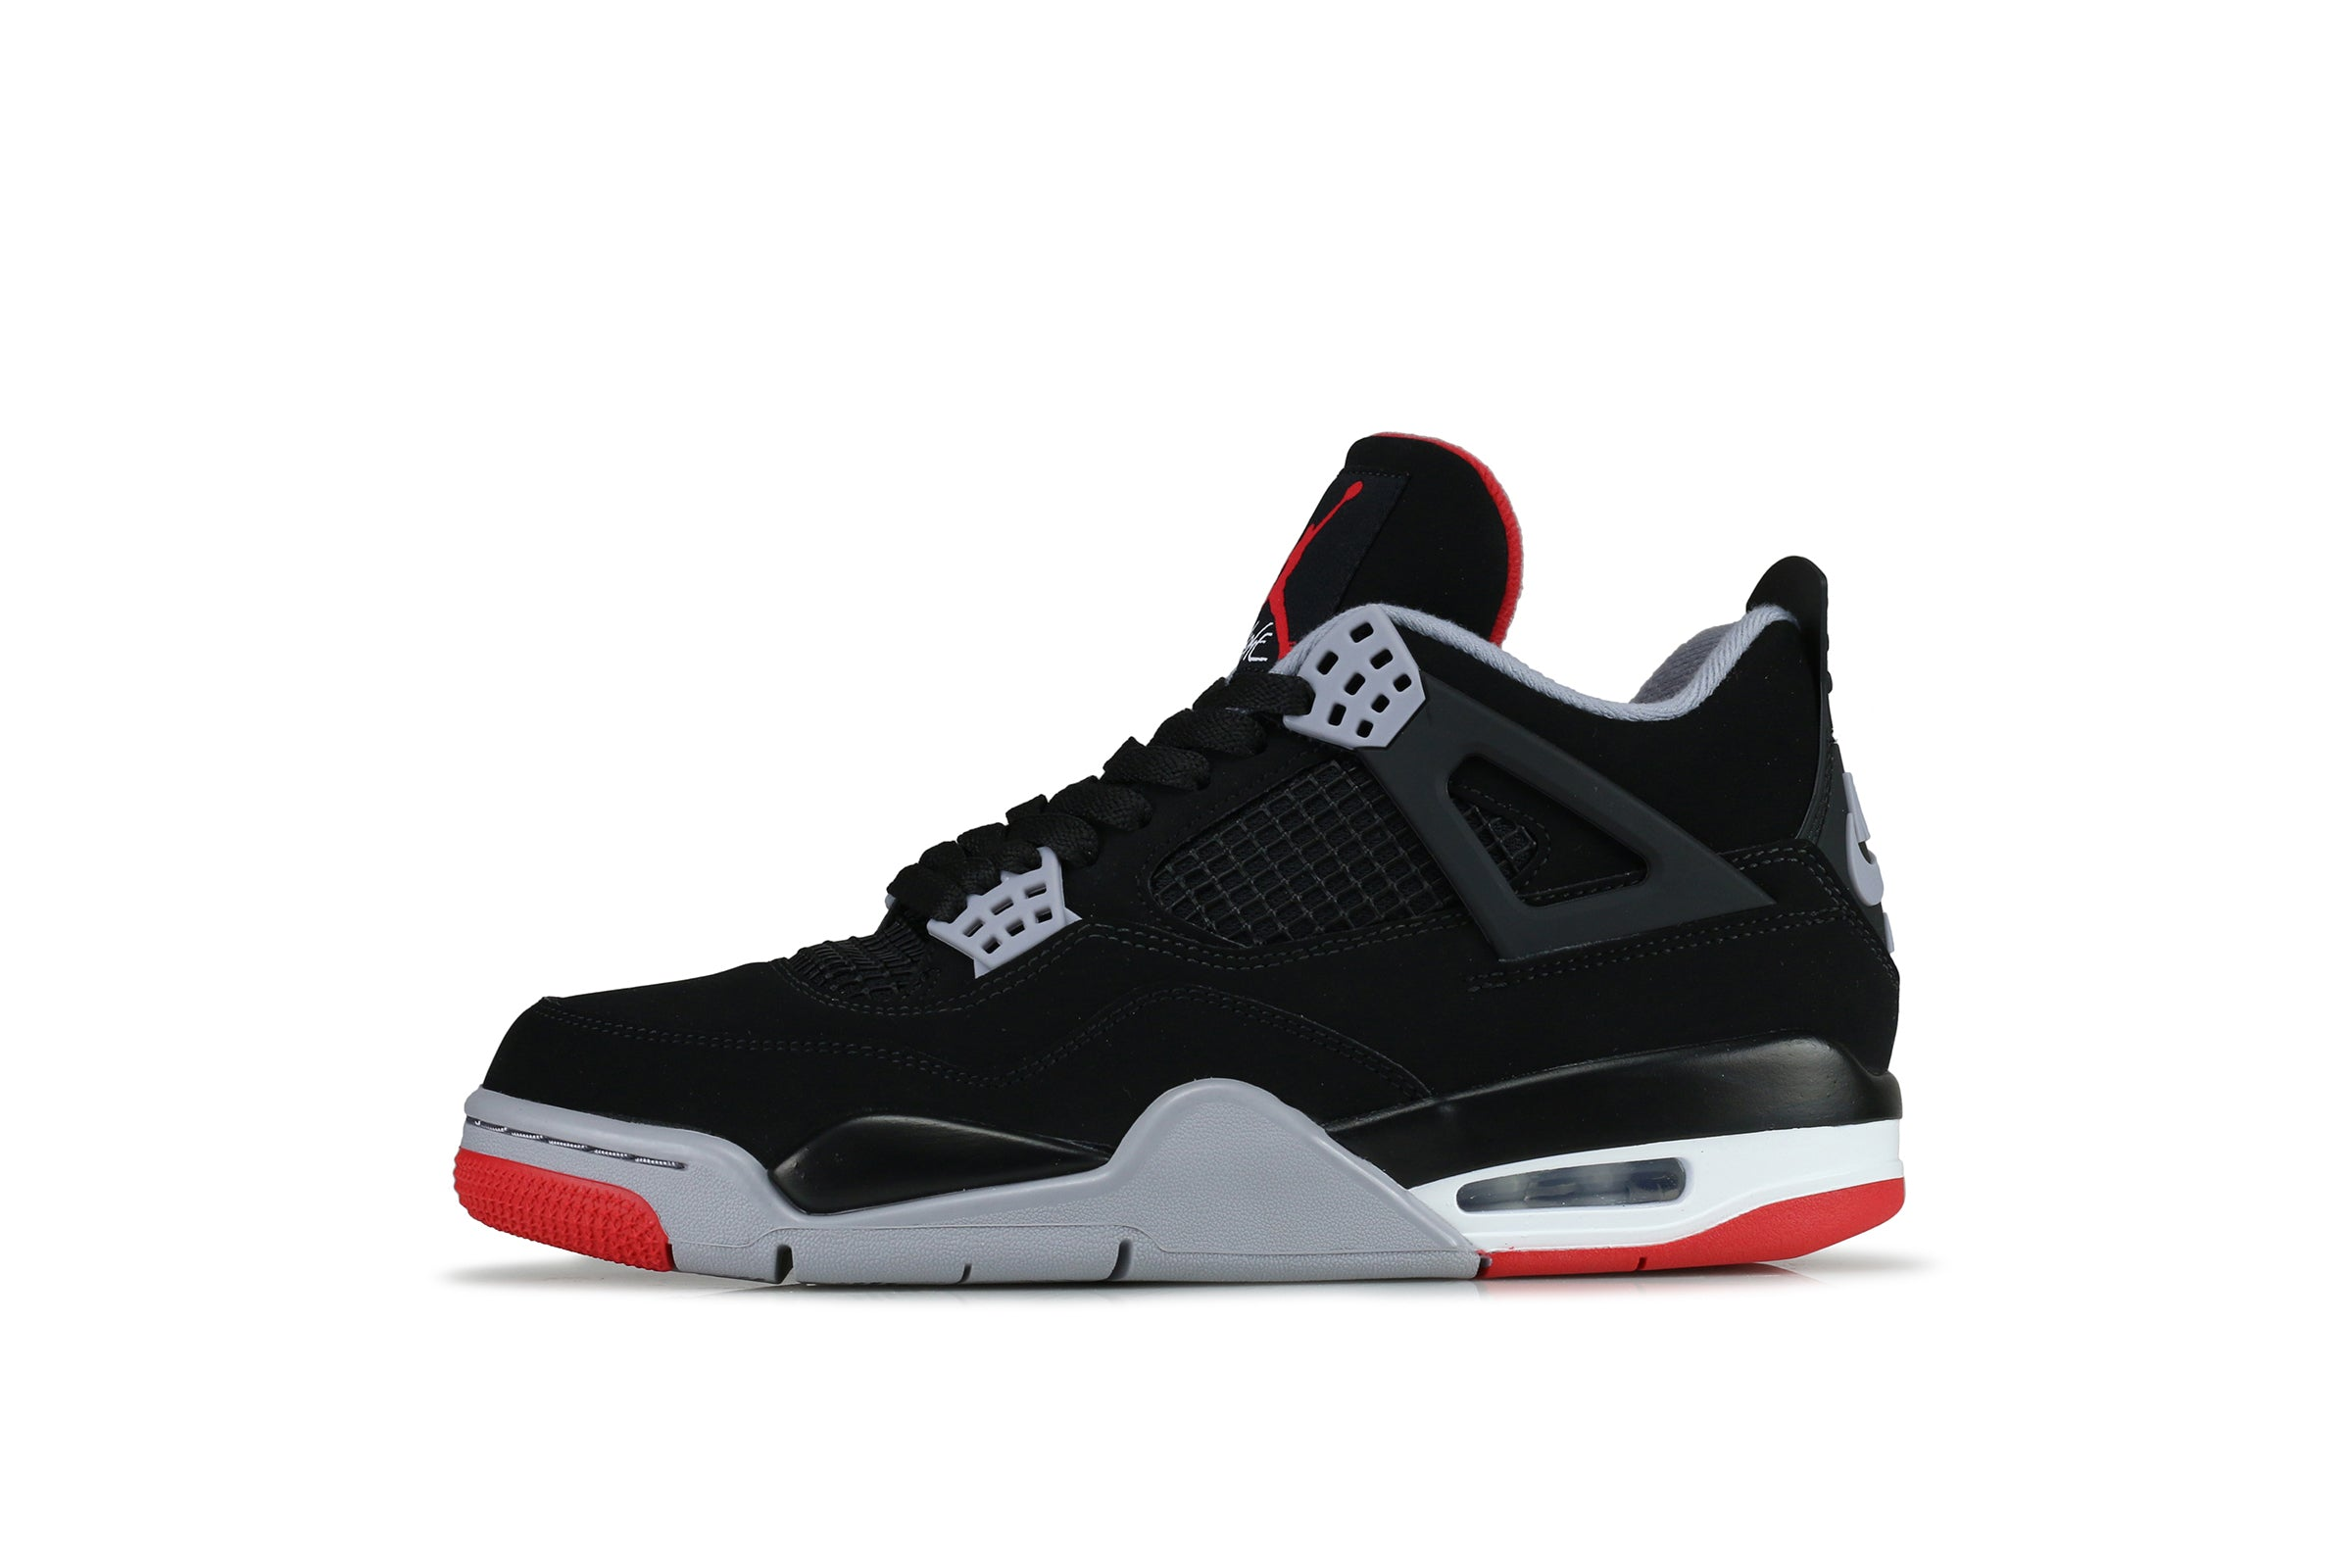 new style 0c4ae d5ae2 Nike Air Jordan 4 Retro OG